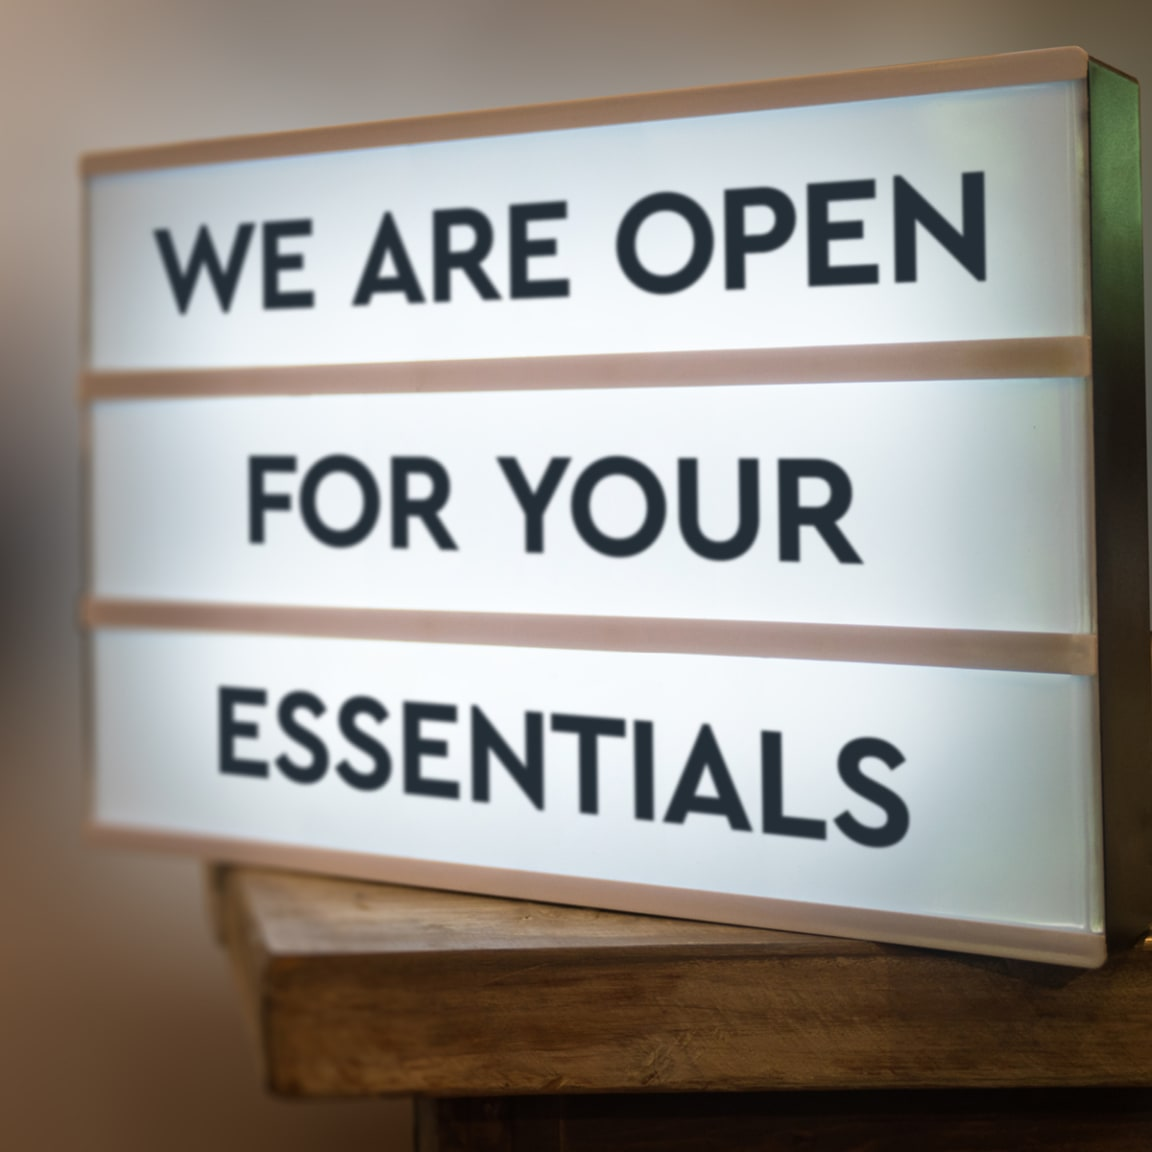 We are open for your essentials